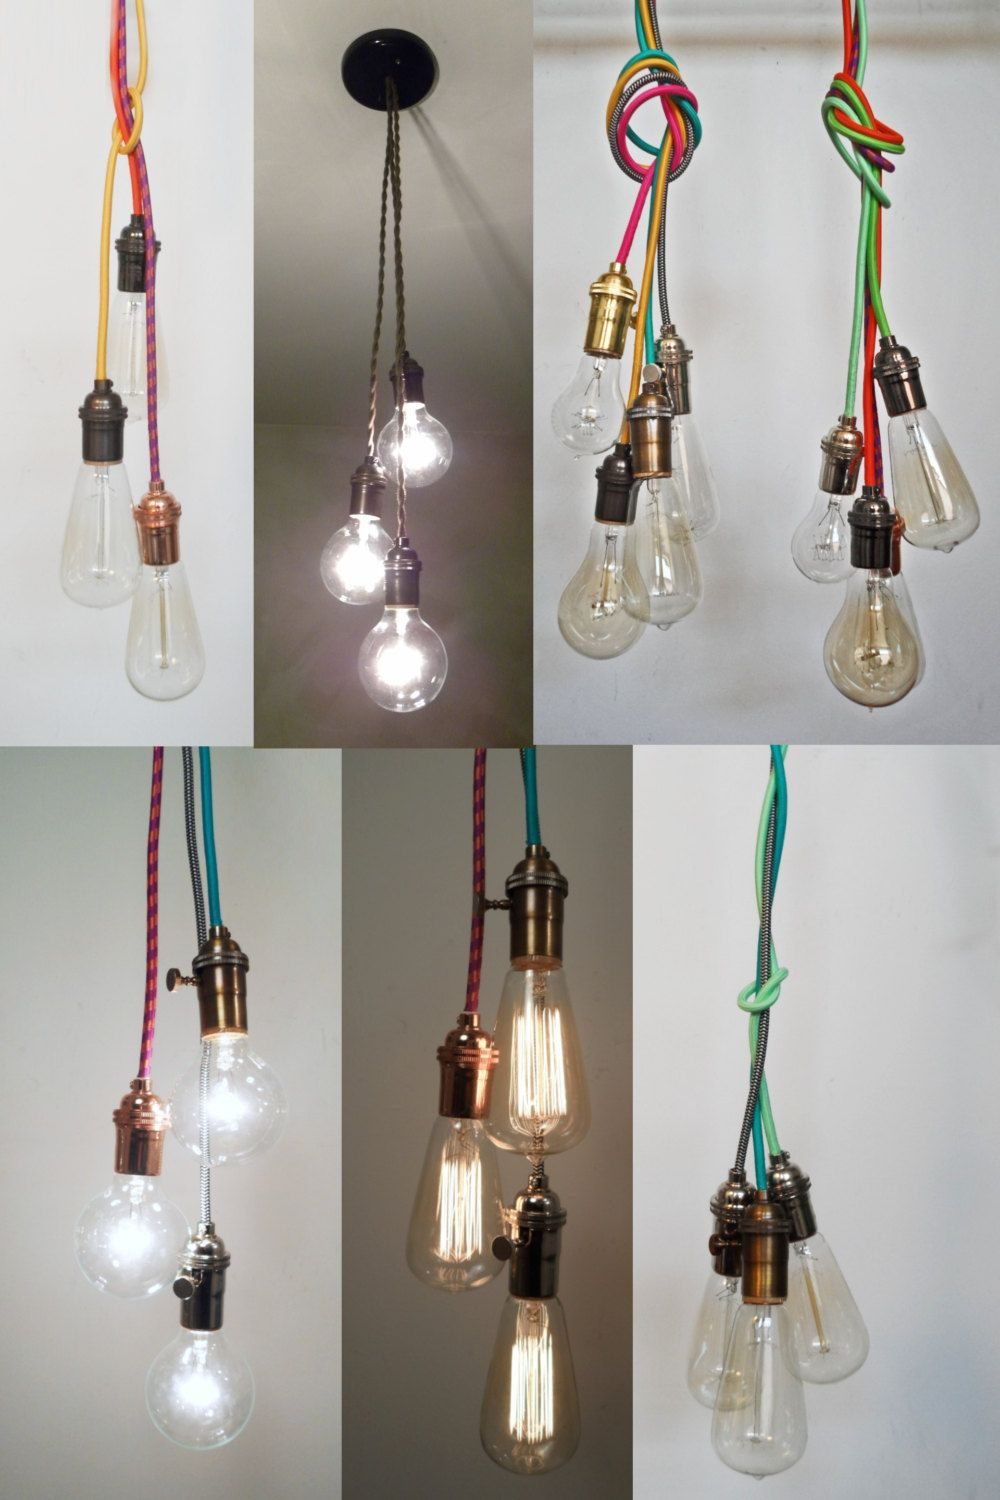 3 Pendant Light Ceiling Hanging Edison Bulb By Hangoutlighting 94 00 With Images Plug In Pendant Light Hanging Pendant Lights Industrial Pendant Lights